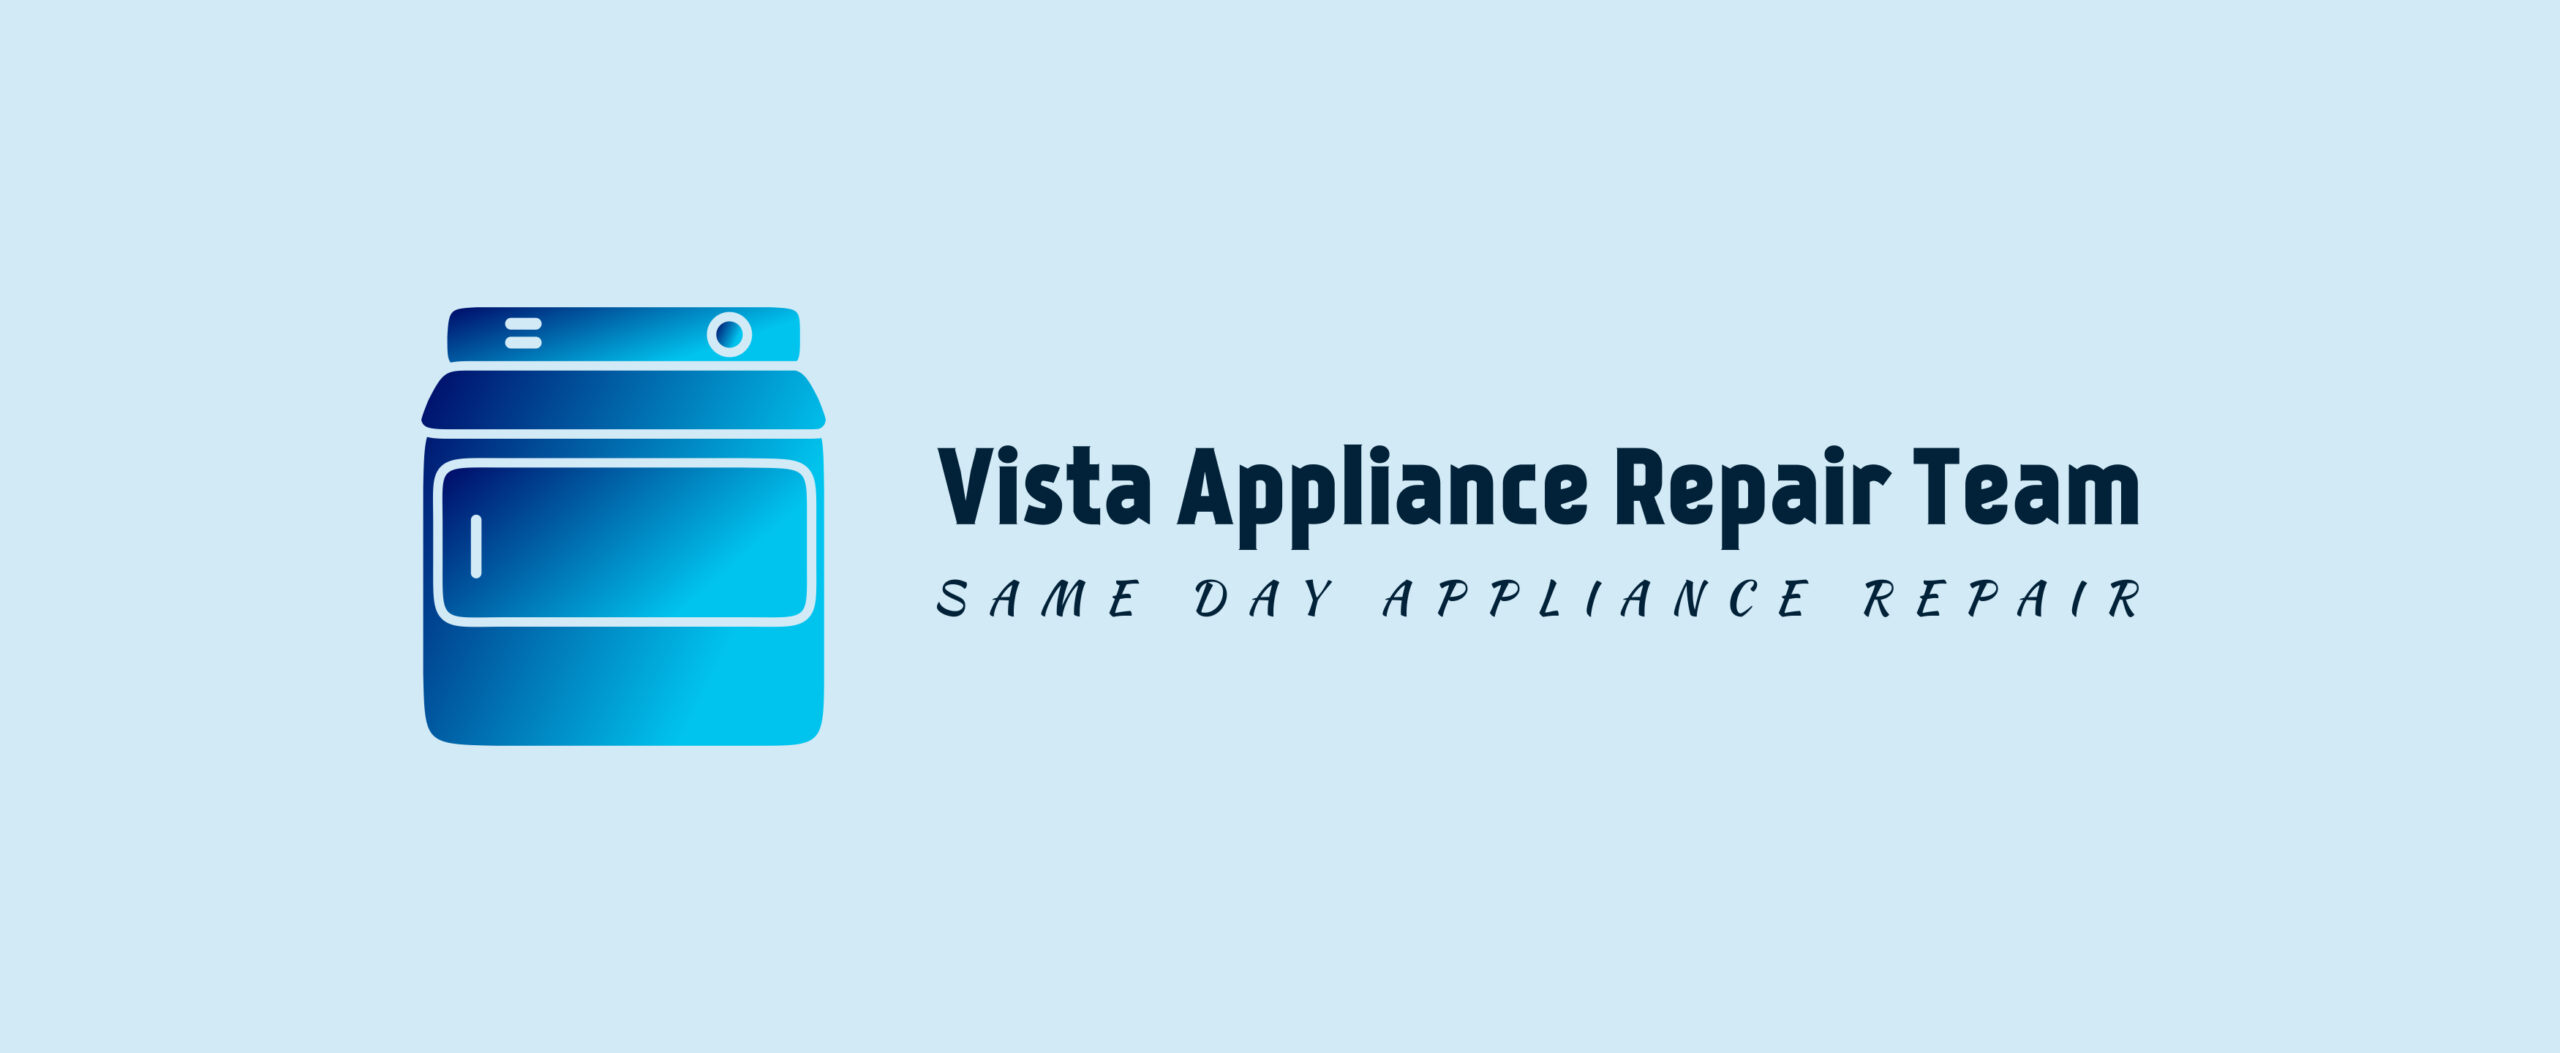 Vista Appliance Repair Team Logo